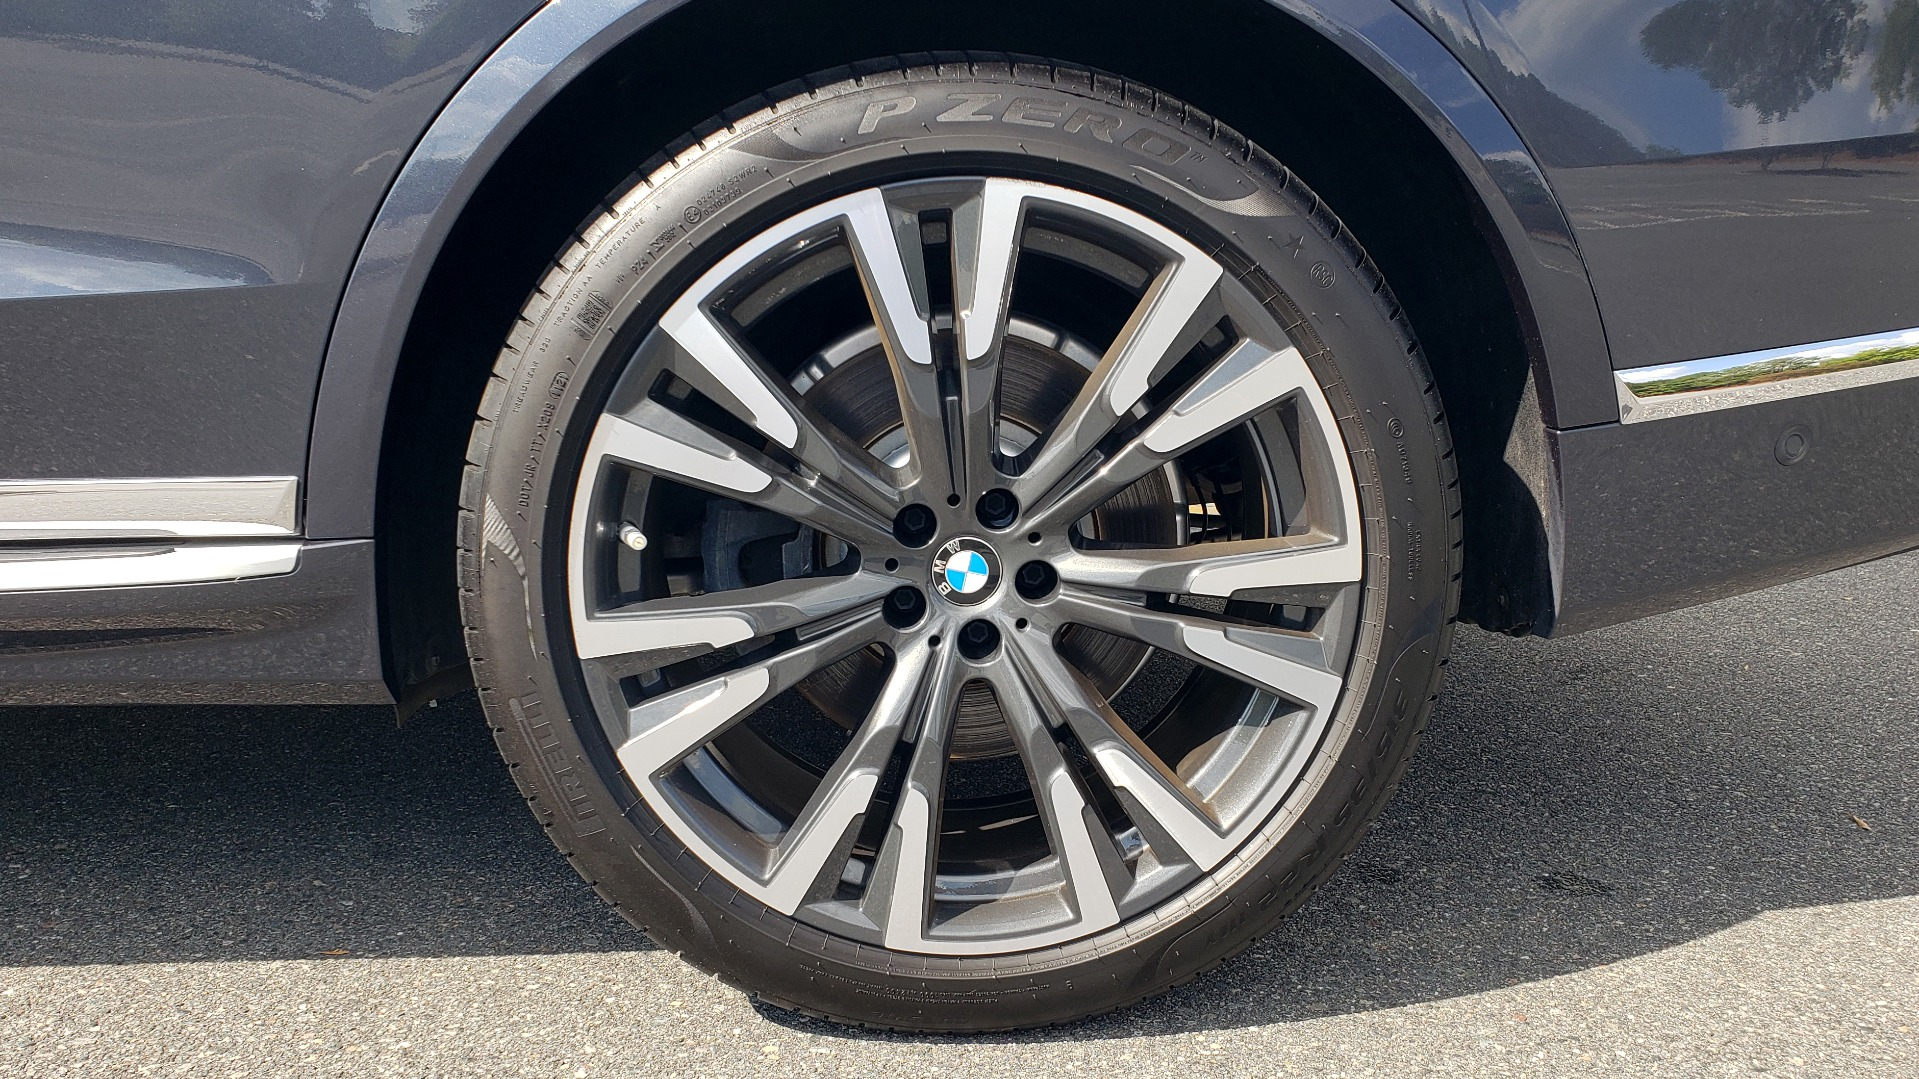 Used 2019 BMW X7 XDRIVE40I PREMIUM / LUXURY / COLD WEATHER / PARK ASST / PANORAMIC SKY / TOW for sale $75,999 at Formula Imports in Charlotte NC 28227 99